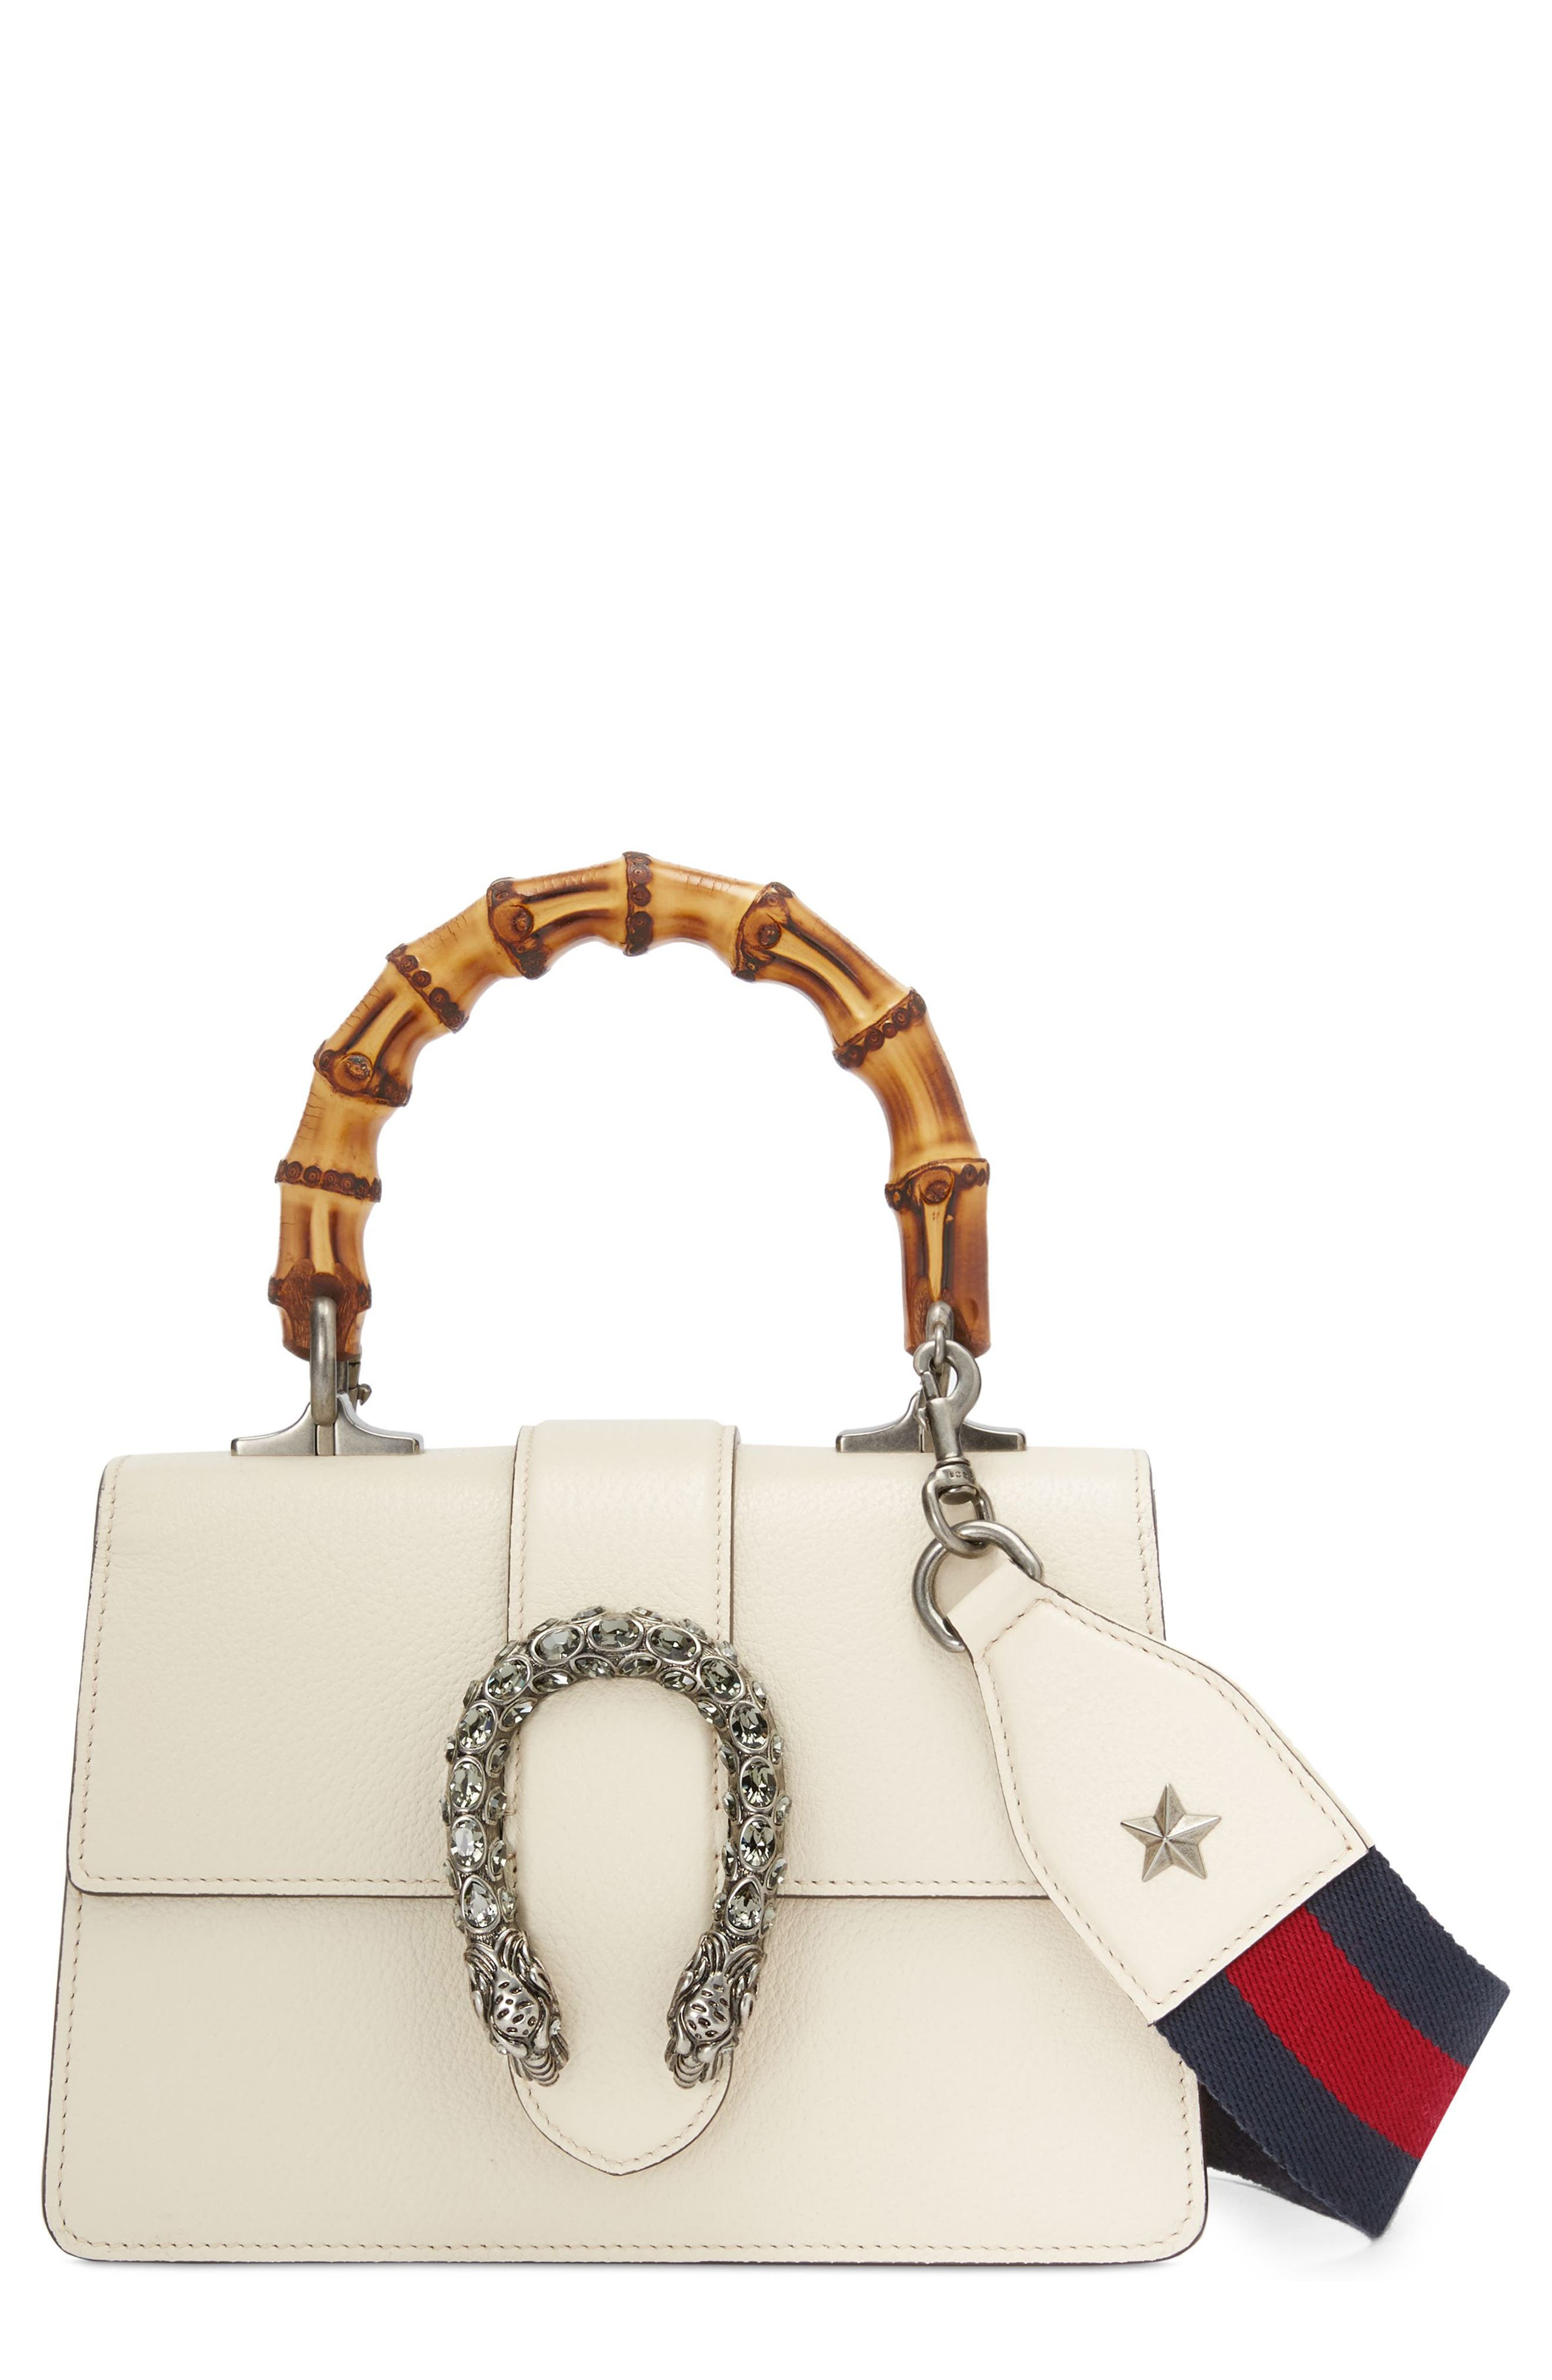 Mini Dionysus Leather Top Handle Satchel,                         Main,                         color, IVORY/ BLUE/ RED/ BLACK